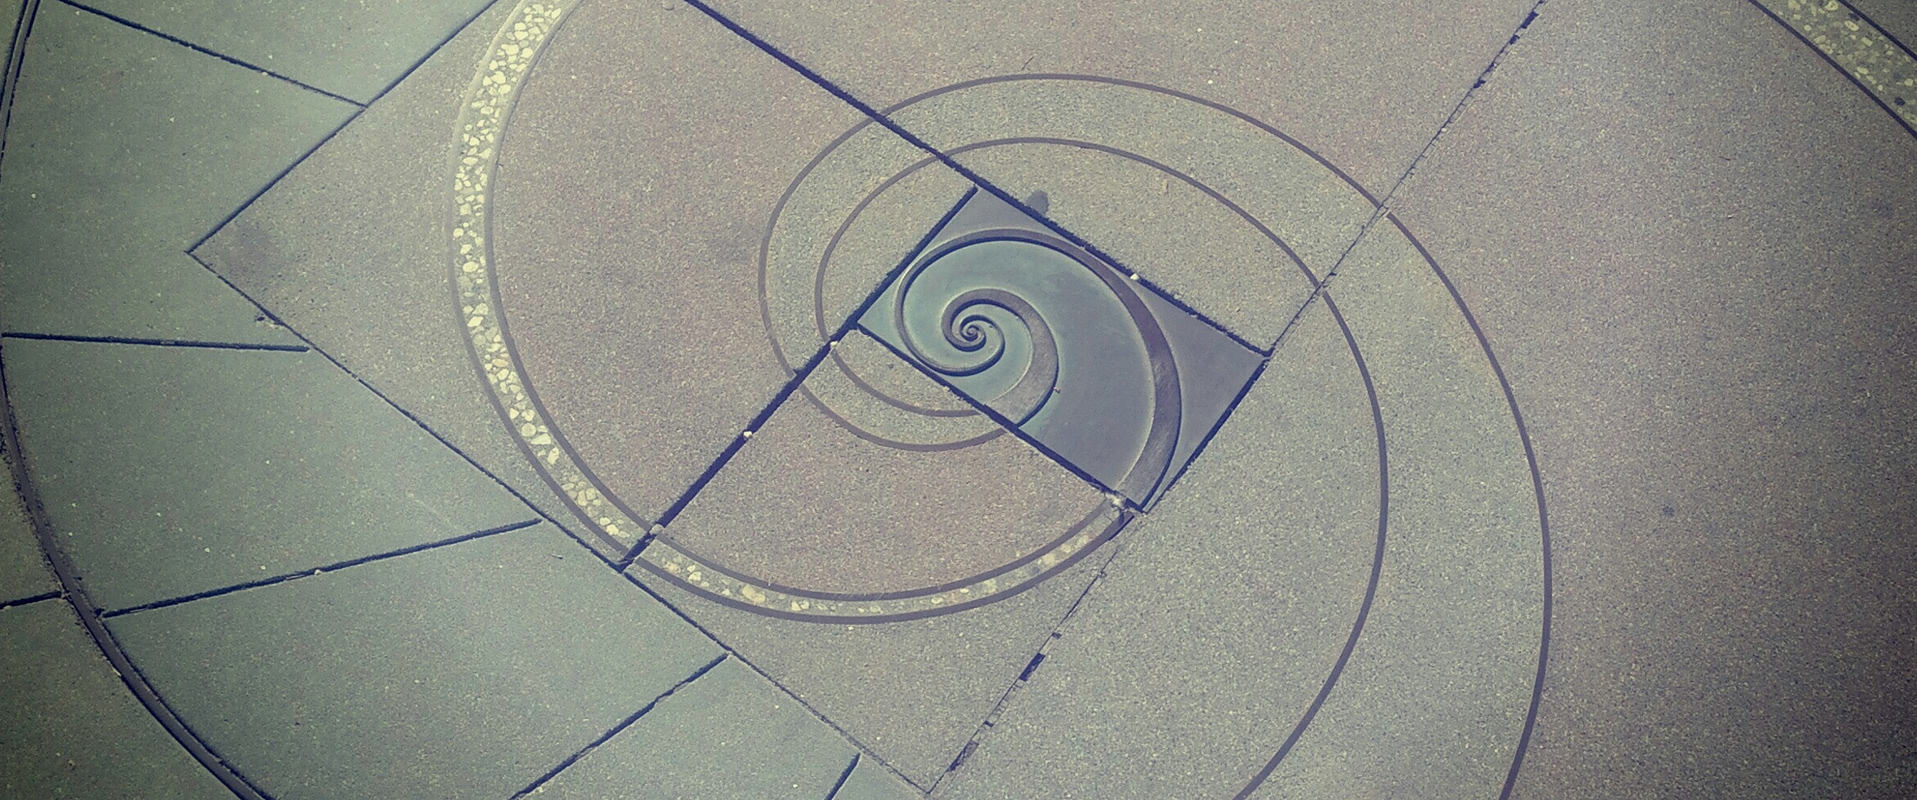 Spiral created in a sidewalk